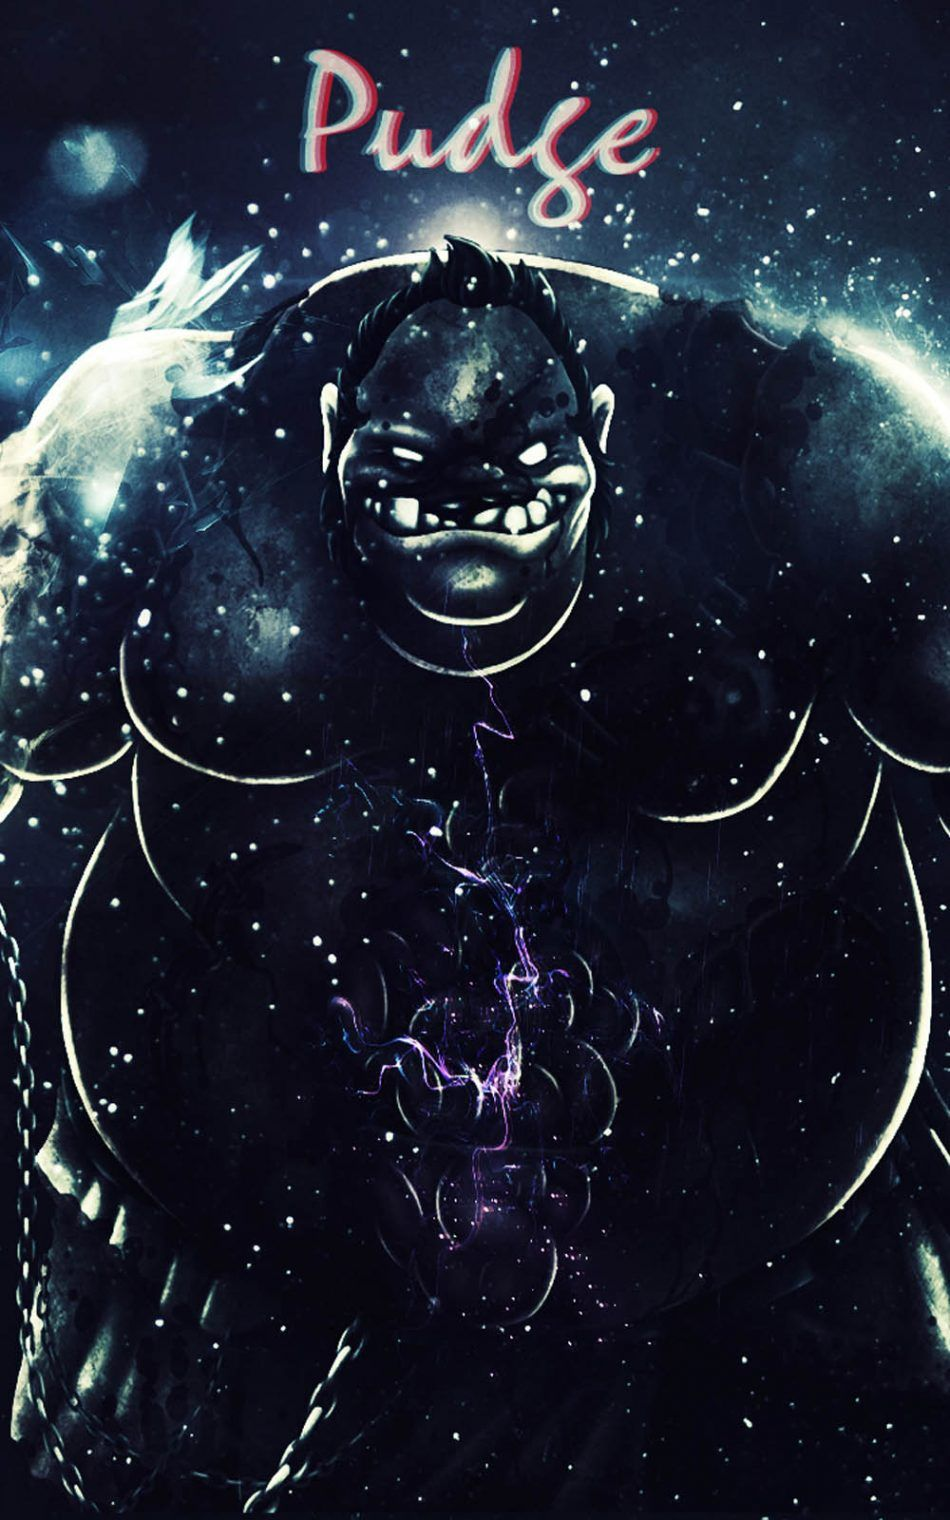 Pudge Dota 2 Dota 2 Wallpapers Hd Dota 2 Iphone Wallpaper Dota 2 Wallpaper